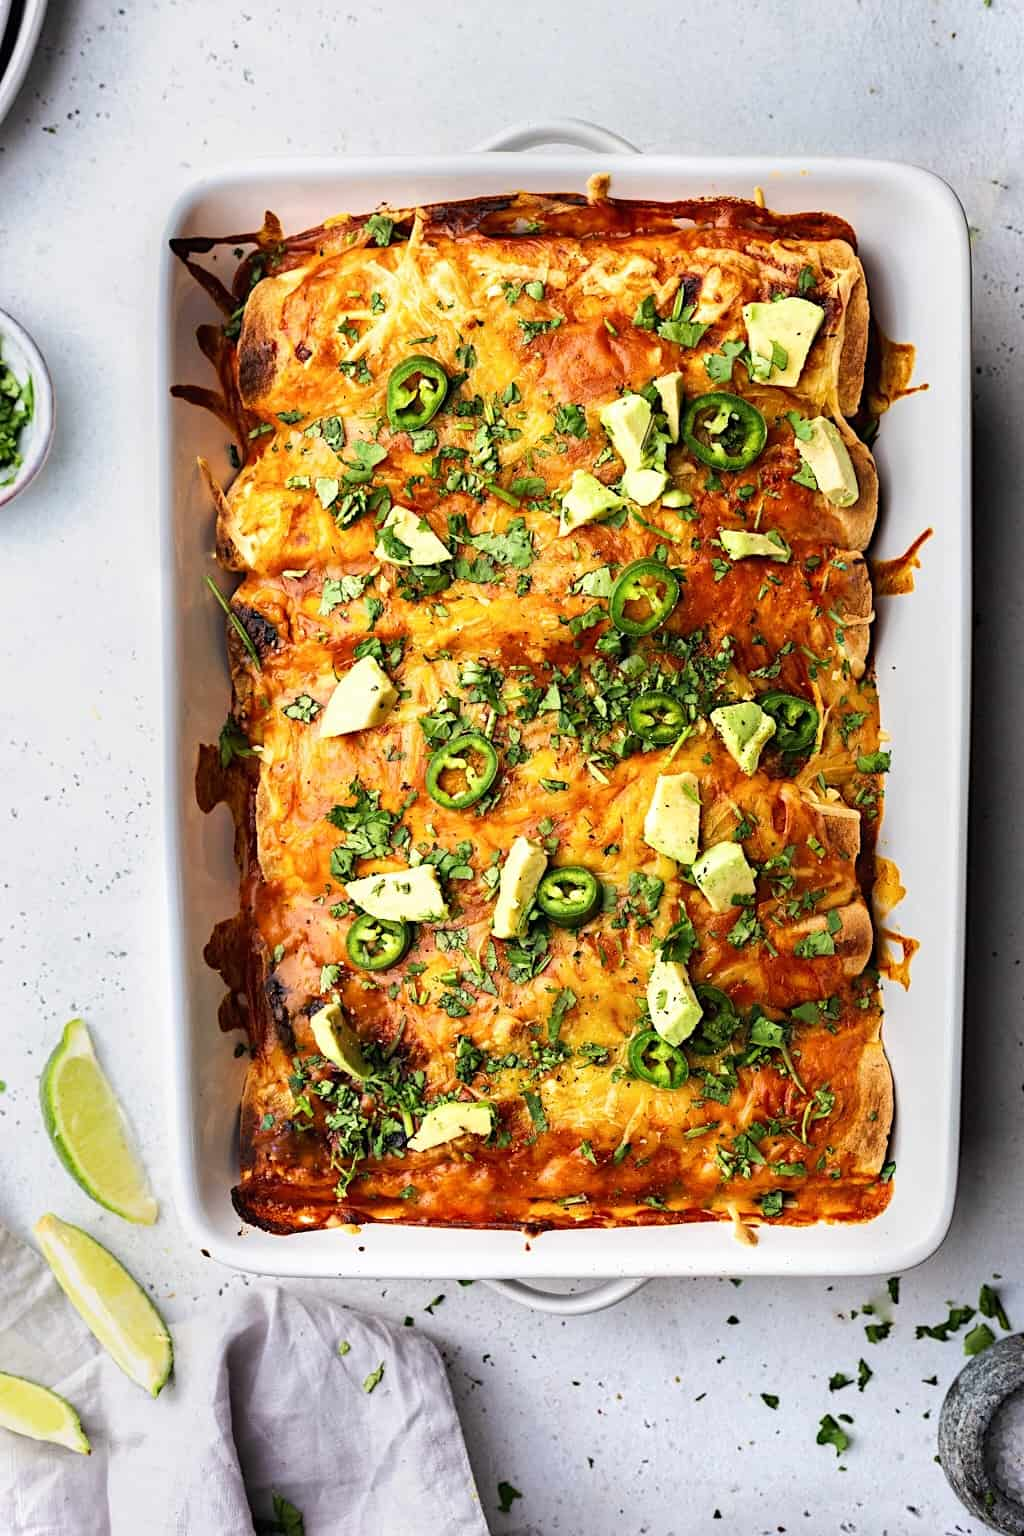 Vegan Black Bean and Sweet Potato Enchiladas #blackbean #sweetpotato #enchiladas #mexican #vegan #recipe